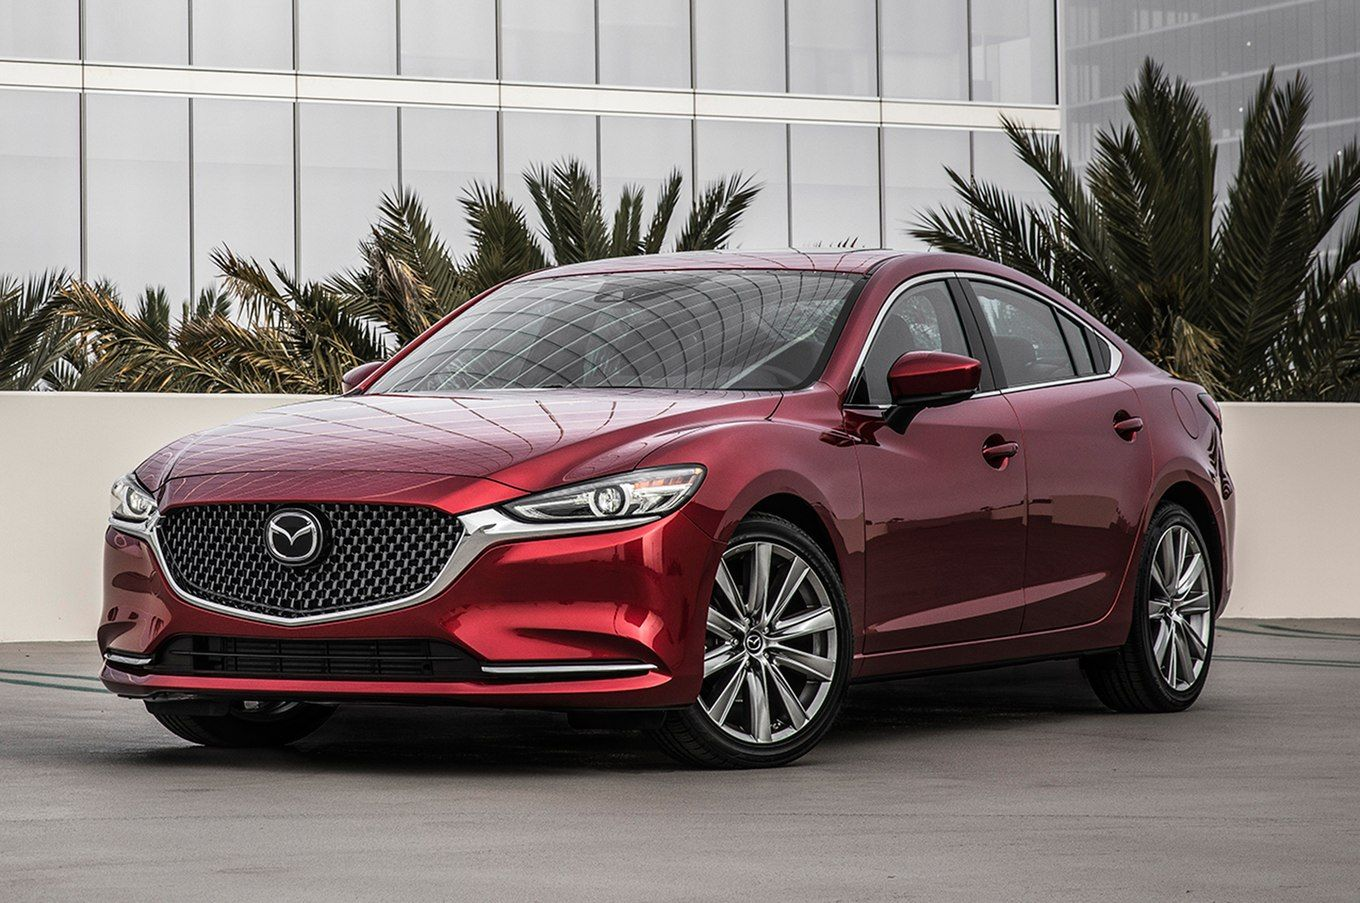 2018 Mazda6 Signature 25t Front Three Quarter 09 Jpg With Images